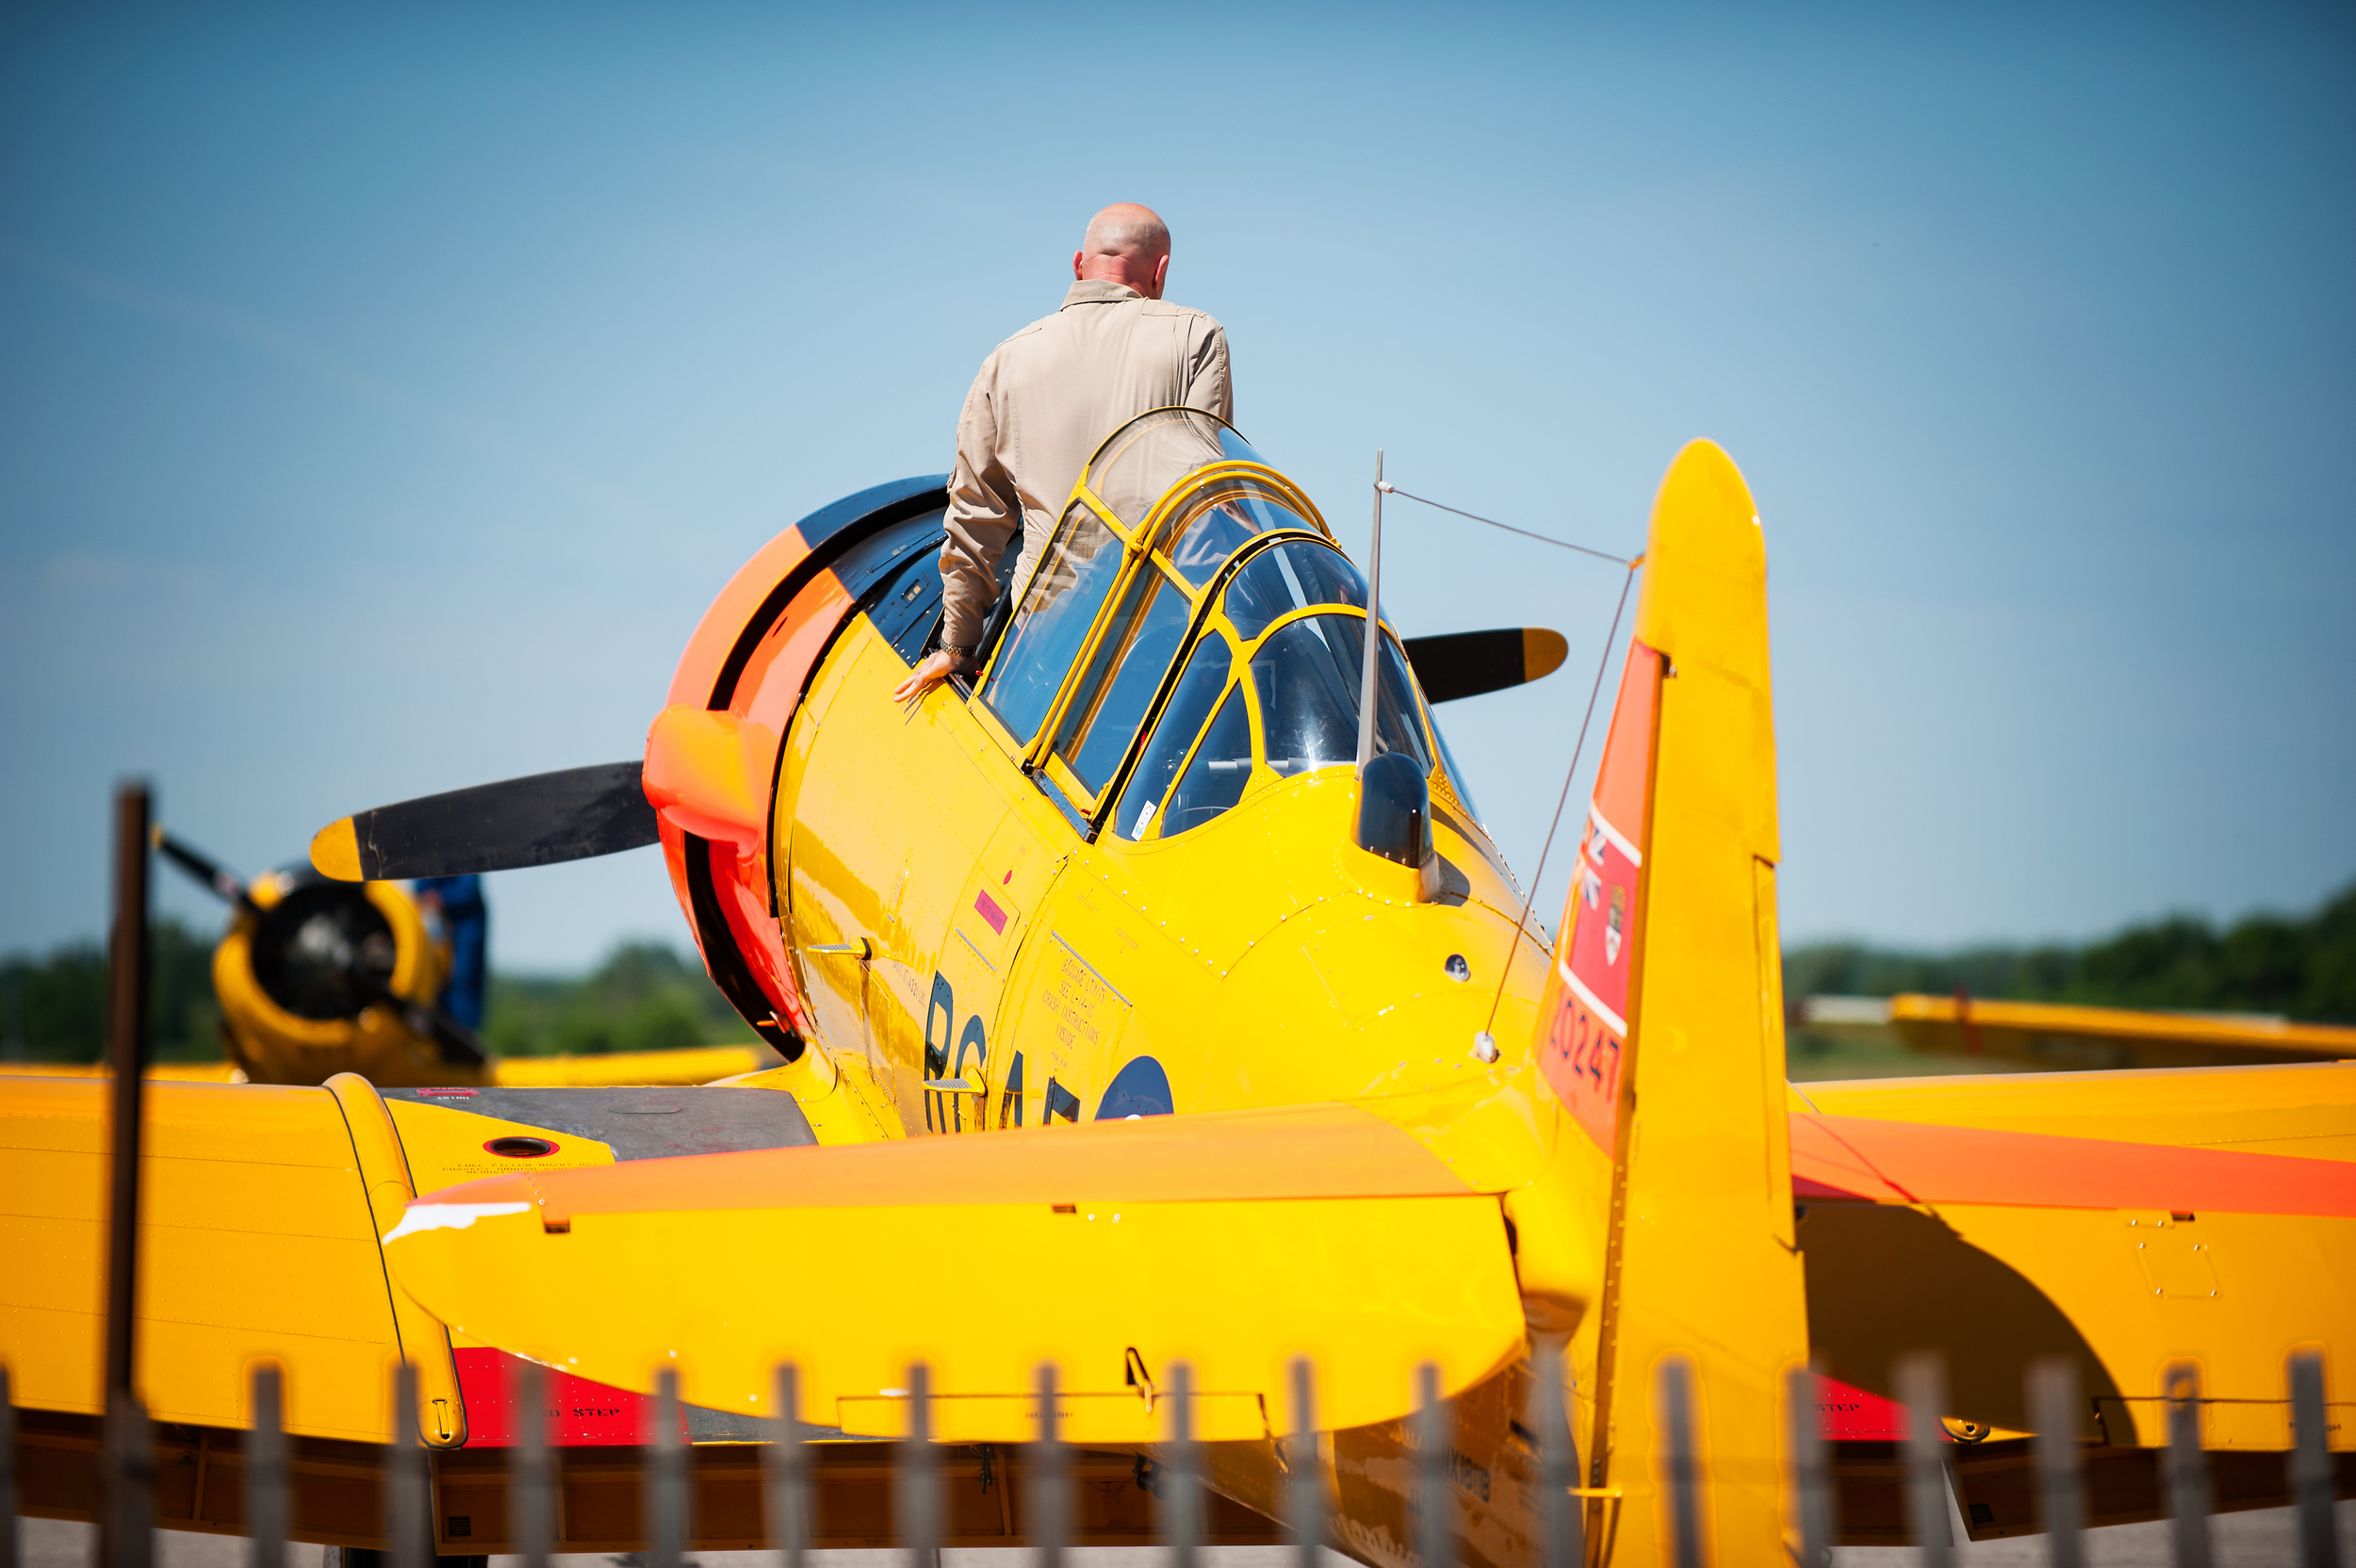 Rick Volker, A Harvard Aerobatics Pilot gets in his harvard and taxi's up to put on quite an impressive solo aerobatics display. Who knew the harvard could do the things he made it do!